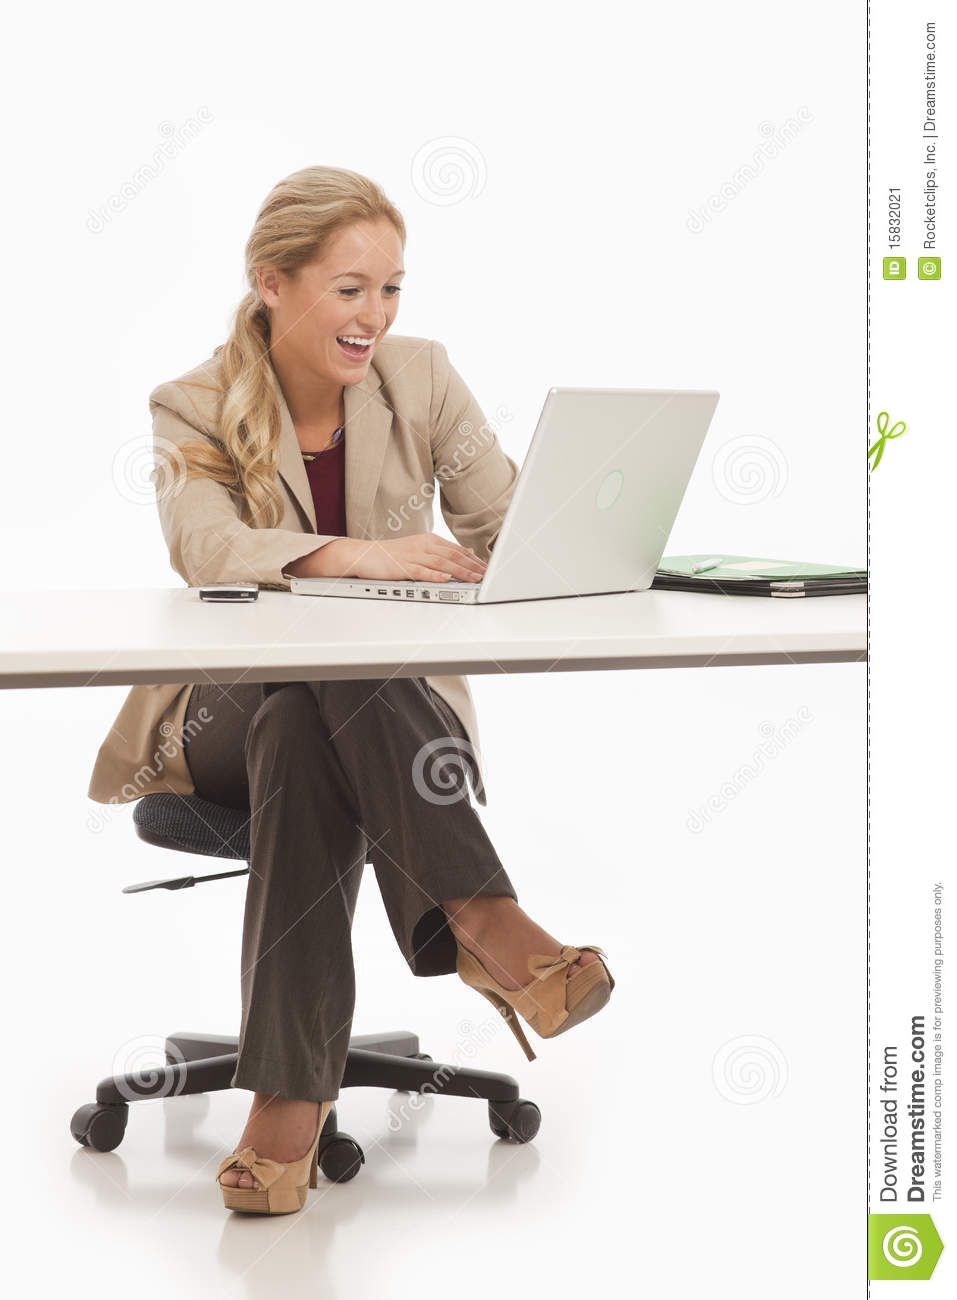 Business girl sitting at desk stock image image of businesswoman lady 15832021 - Desk girl image in ...